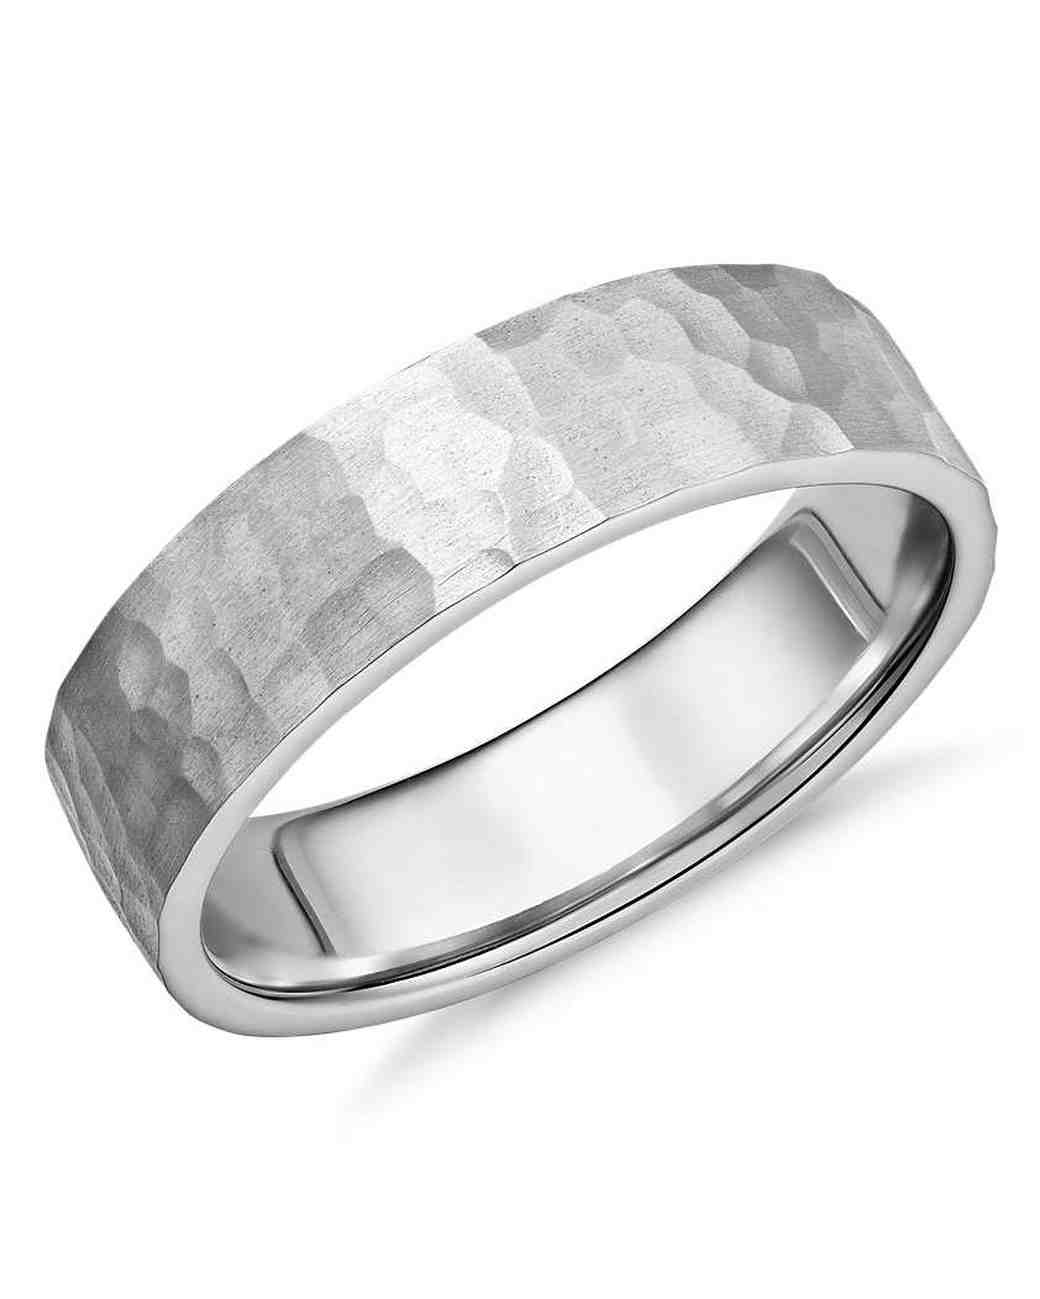 10 Unique Mens Wedding Bands Martha Stewart Weddings